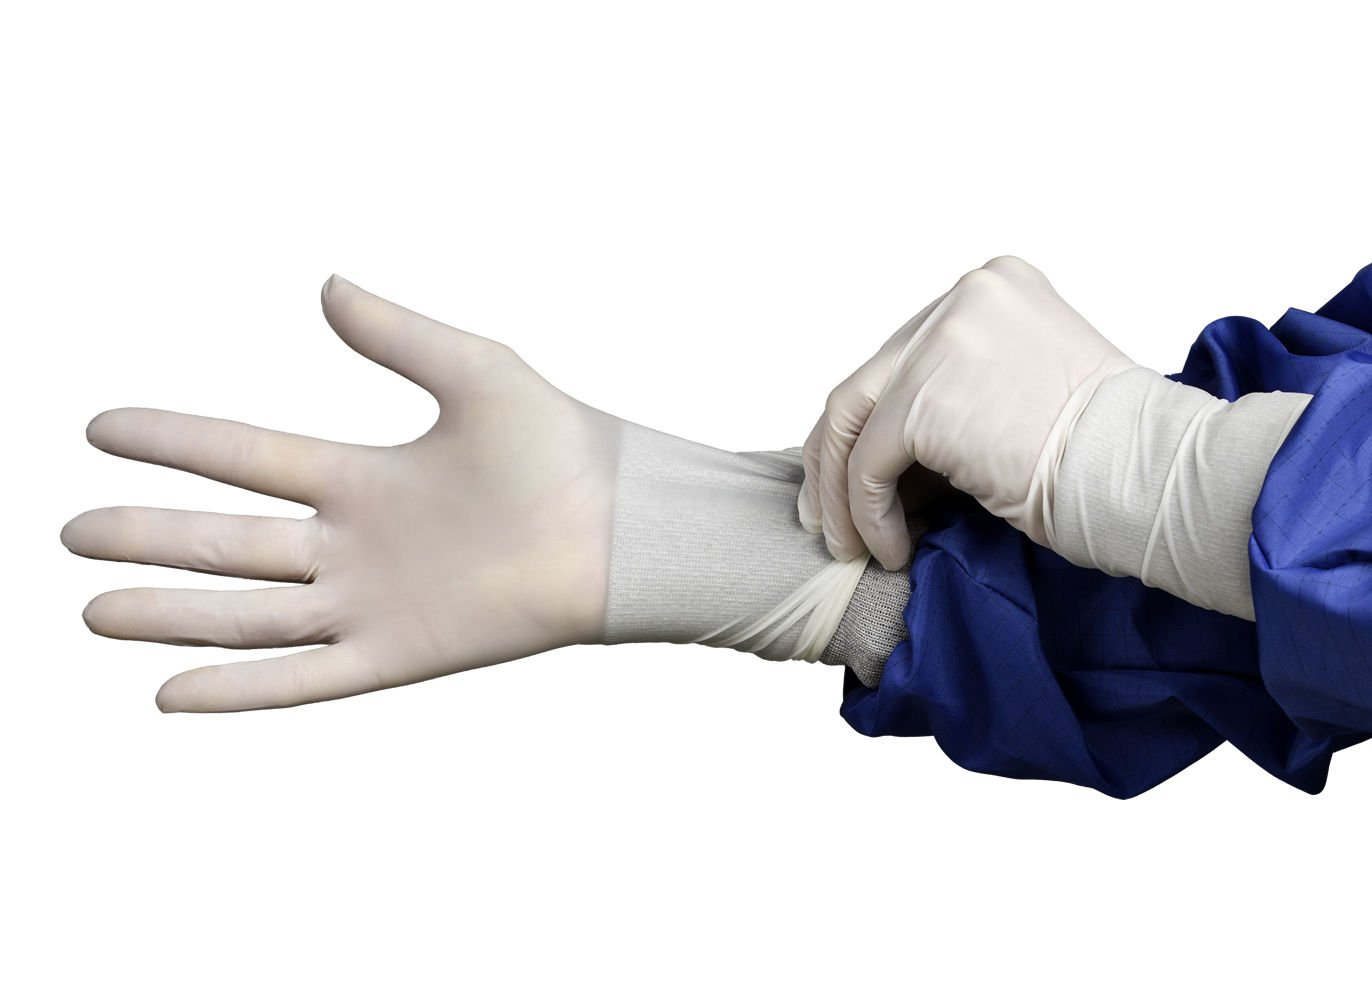 Hourglass HandPRO 9100 Nitrile Ambidextrous Cleanroom Glove, Powder Free, 290mm Length, 0.06mm Thick, Medium (Case of 10 Bags, 100/Bag)